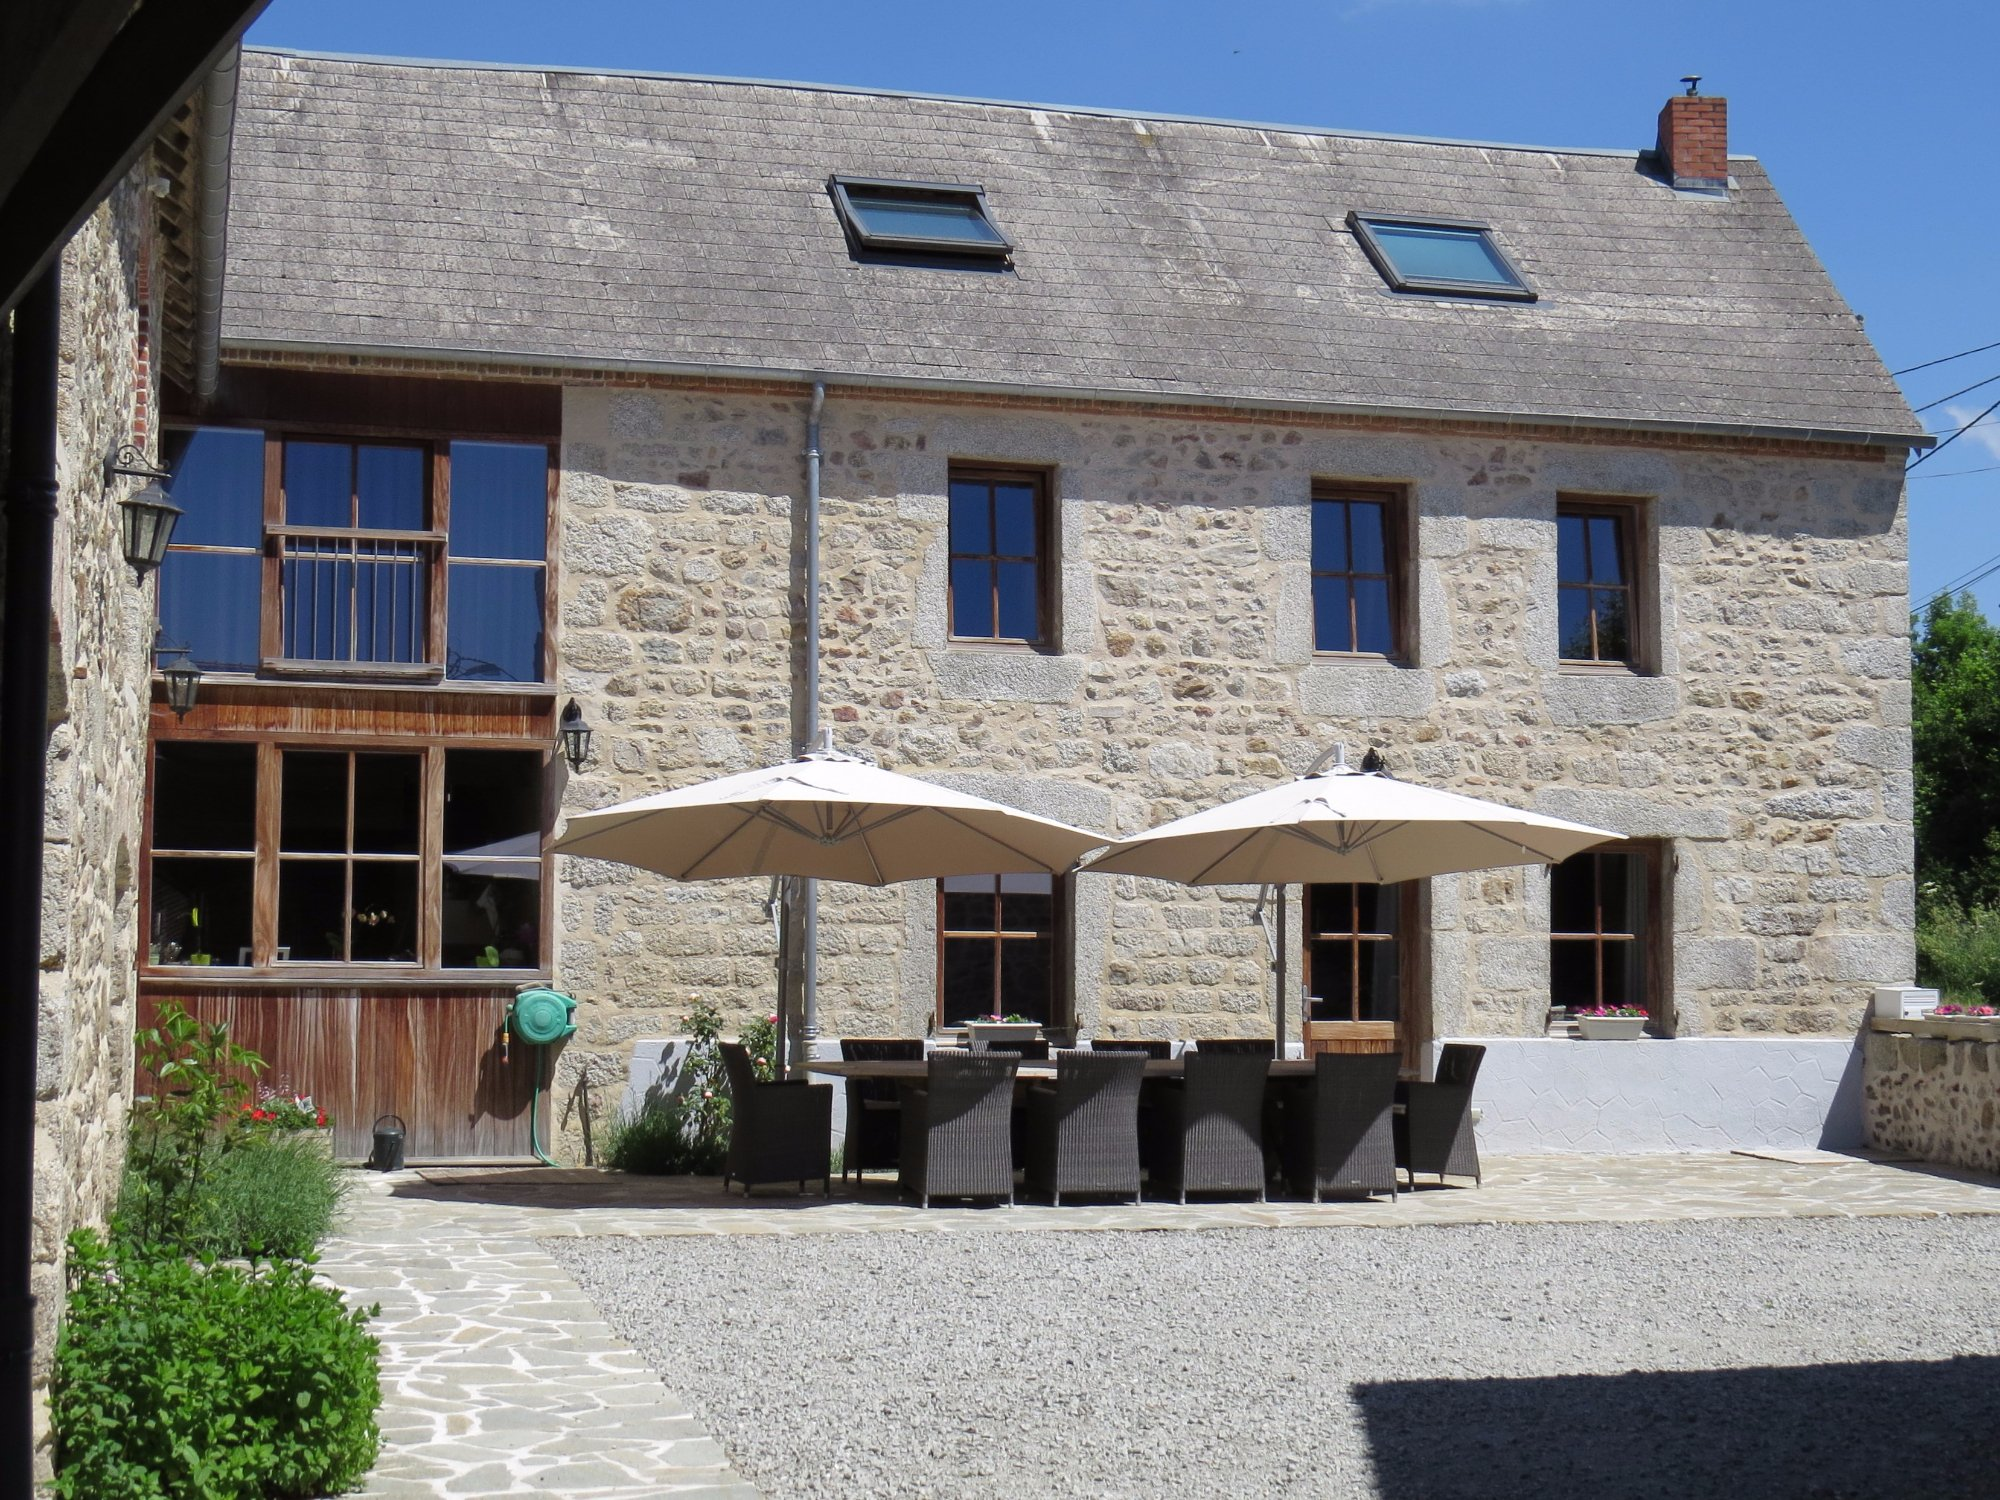 Chambres d Hotes L Elementaire Prices & B&B Reviews Charensat